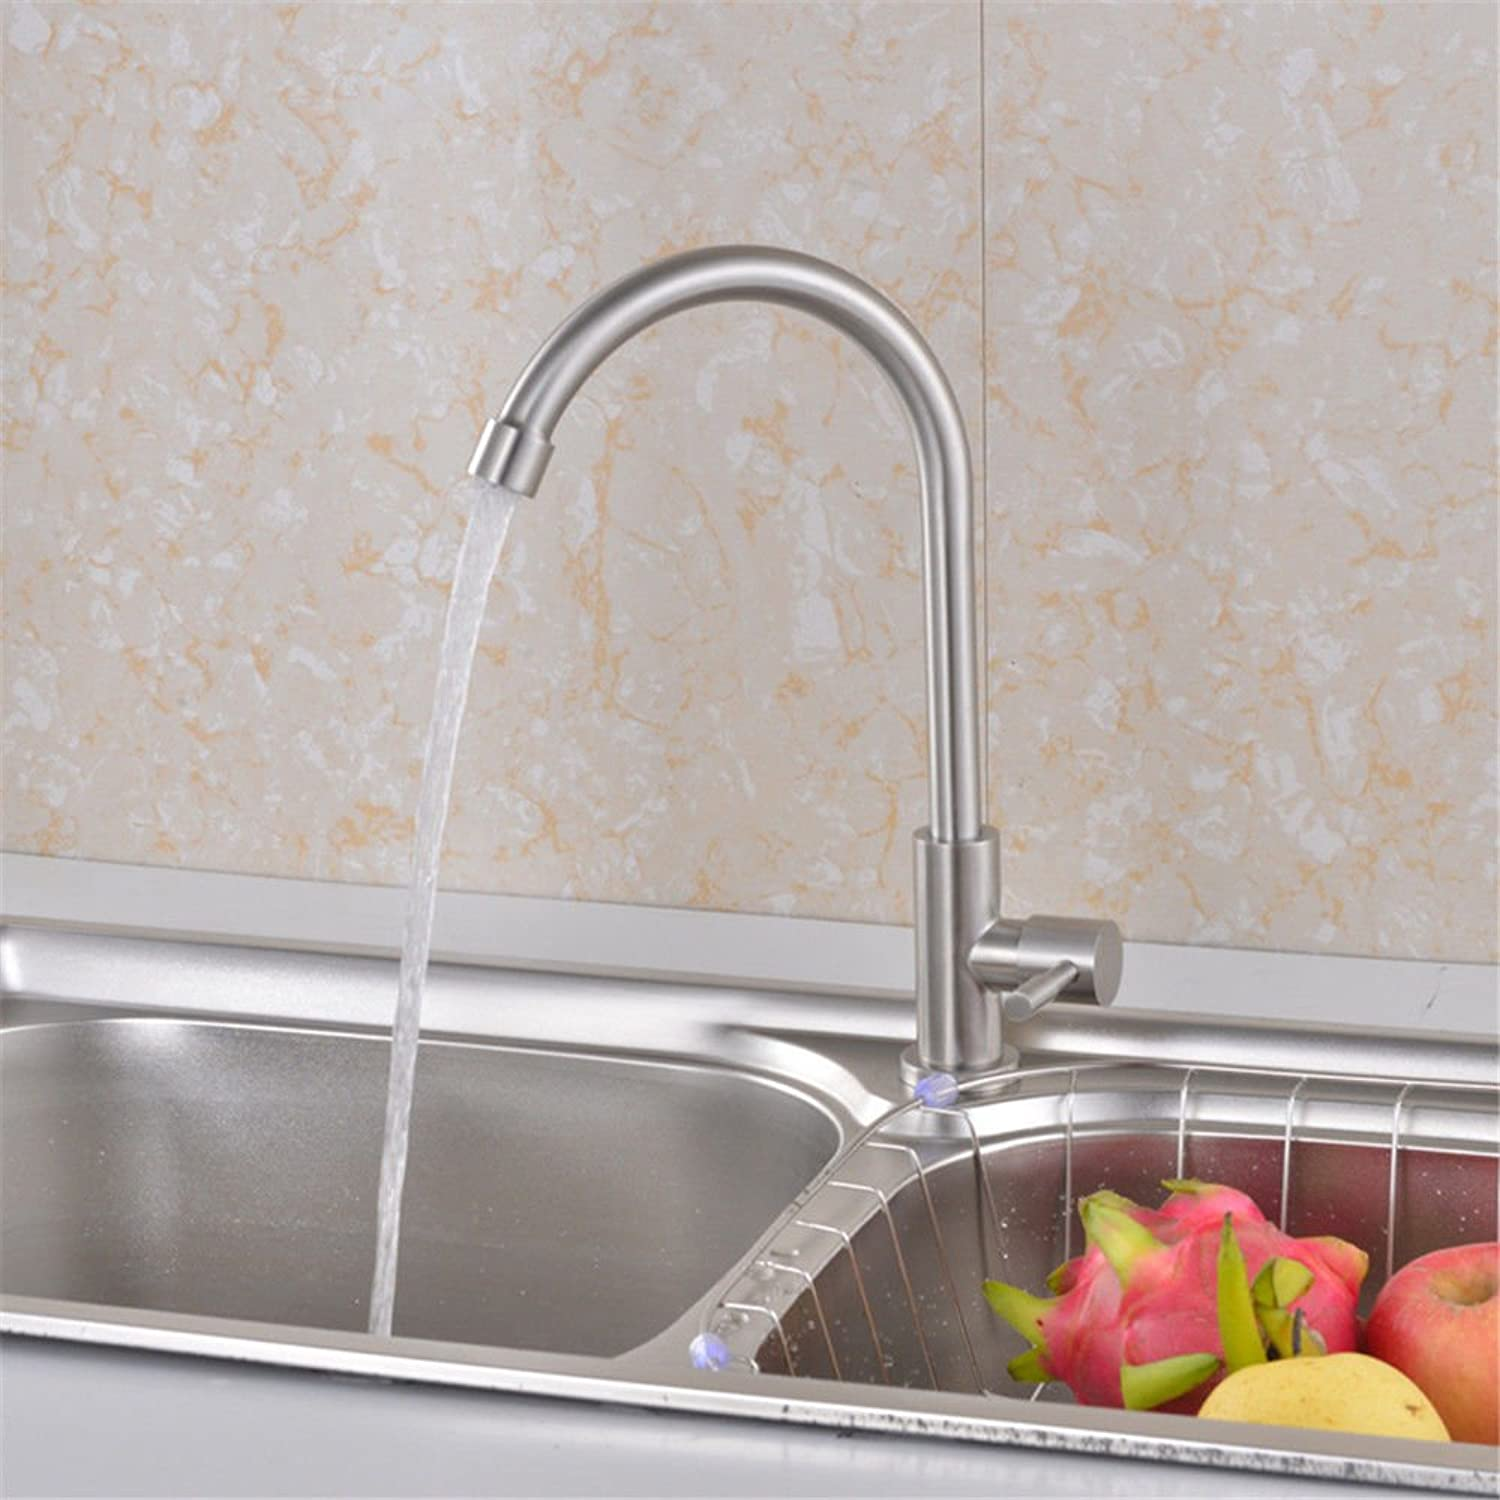 ETERNAL QUALITY Bathroom Sink Basin Tap Brass Mixer Tap Washroom Mixer Faucet Young porcelain 67301 single cold water to wash dishes kitchen faucet 304 Stainless Steel St